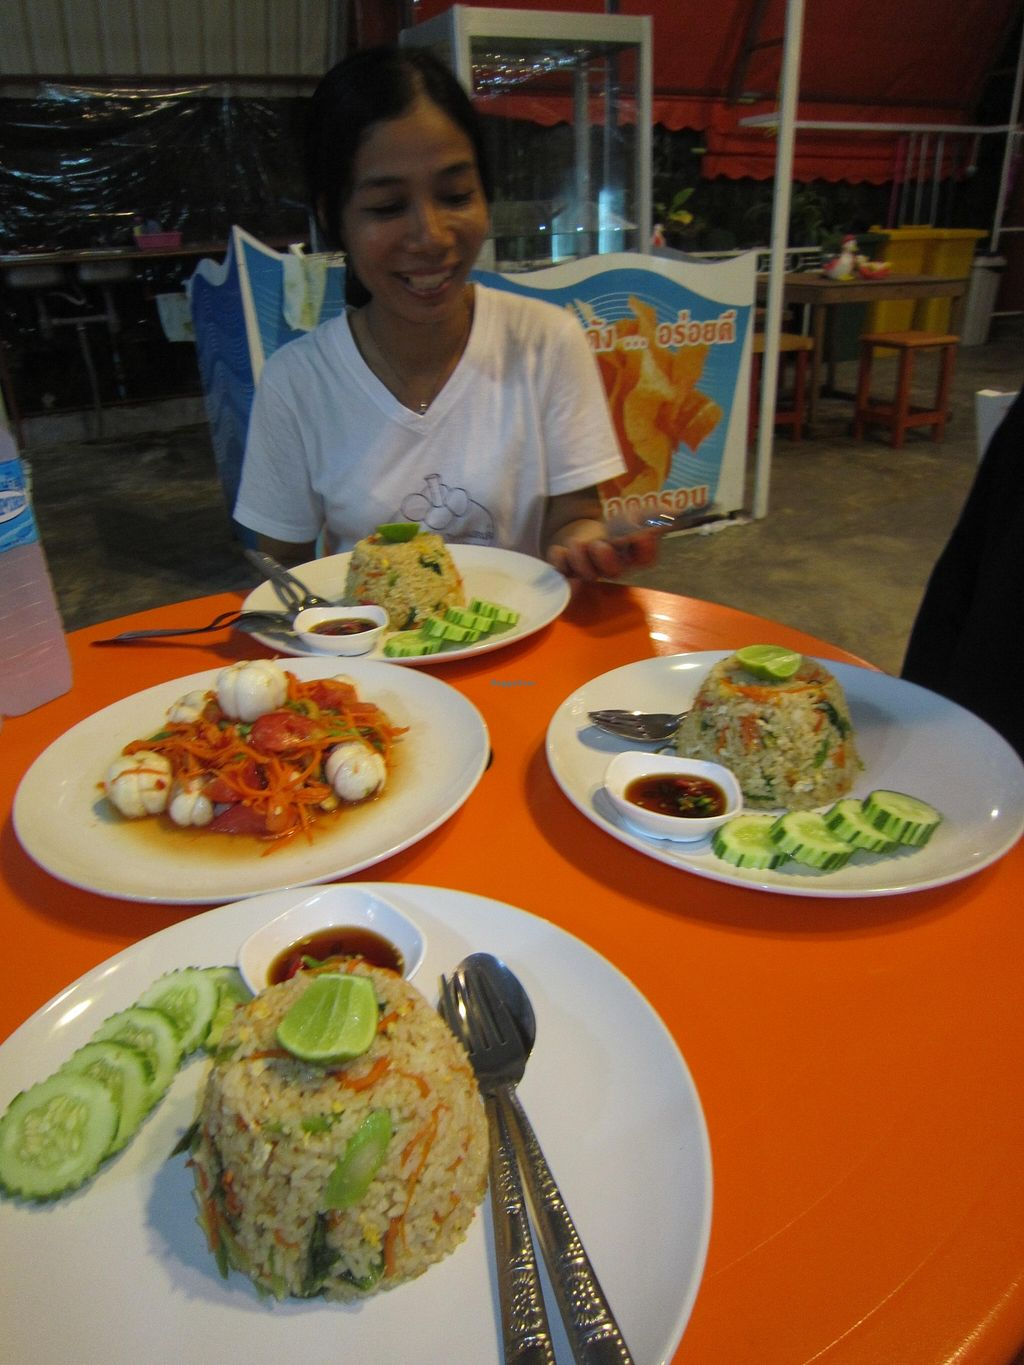 """Photo of CLOSED: Nam Mangosteen Thailand   by <a href=""""/members/profile/IanSmith"""">IanSmith</a> <br/>Chef Nam with forget me not salad and fried rice. So delicious! <br/> September 26, 2015  - <a href='/contact/abuse/image/61185/119164'>Report</a>"""